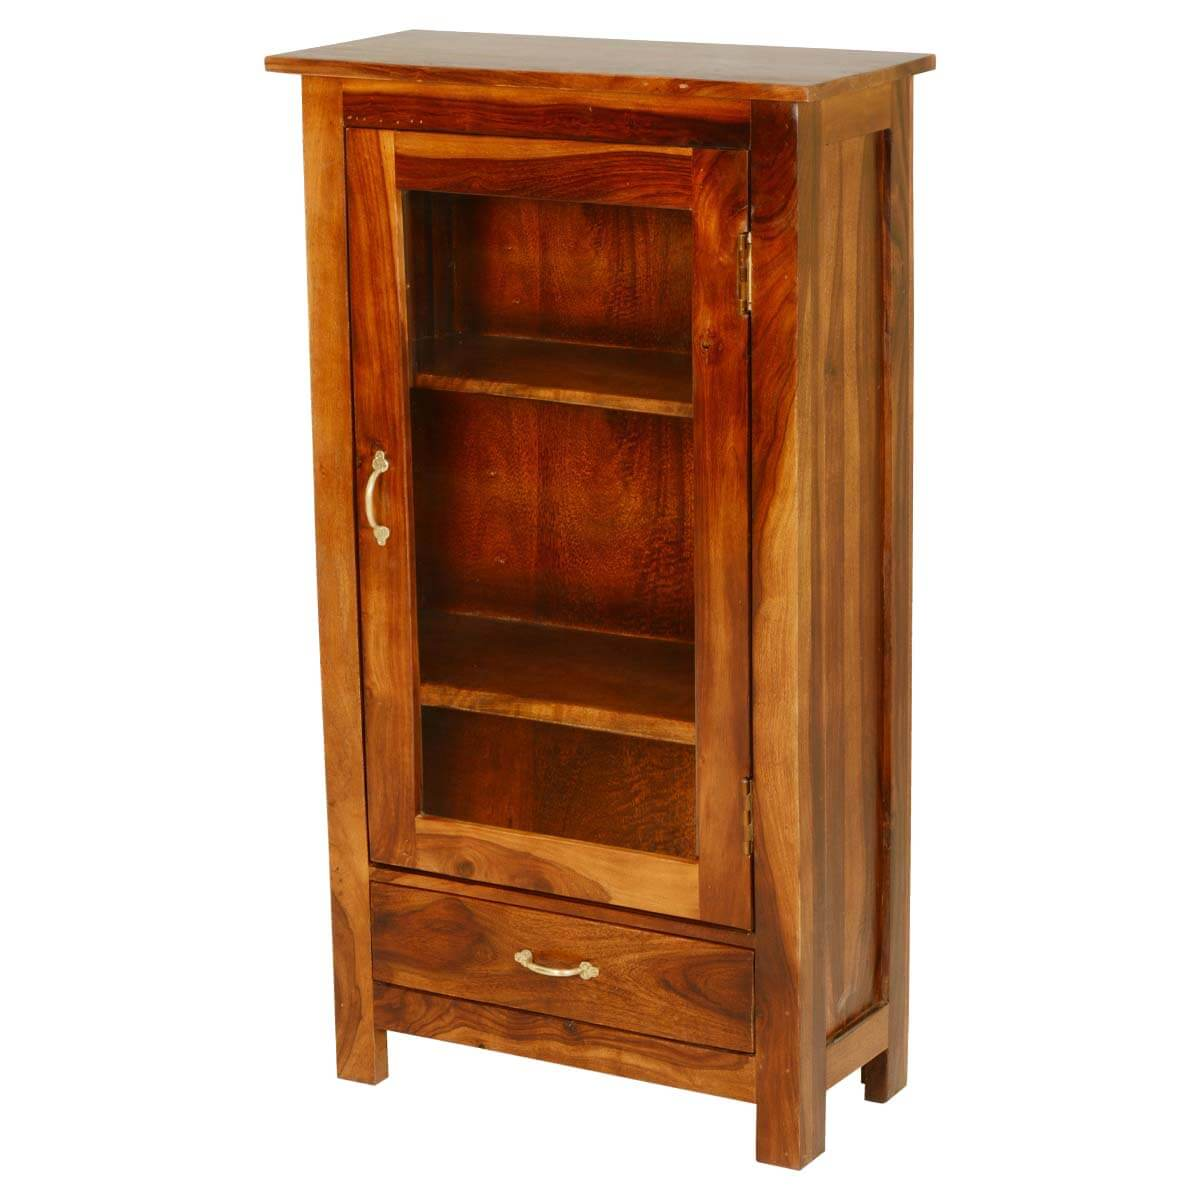 Pinellas solid wood single glass door drawer curio cabinet